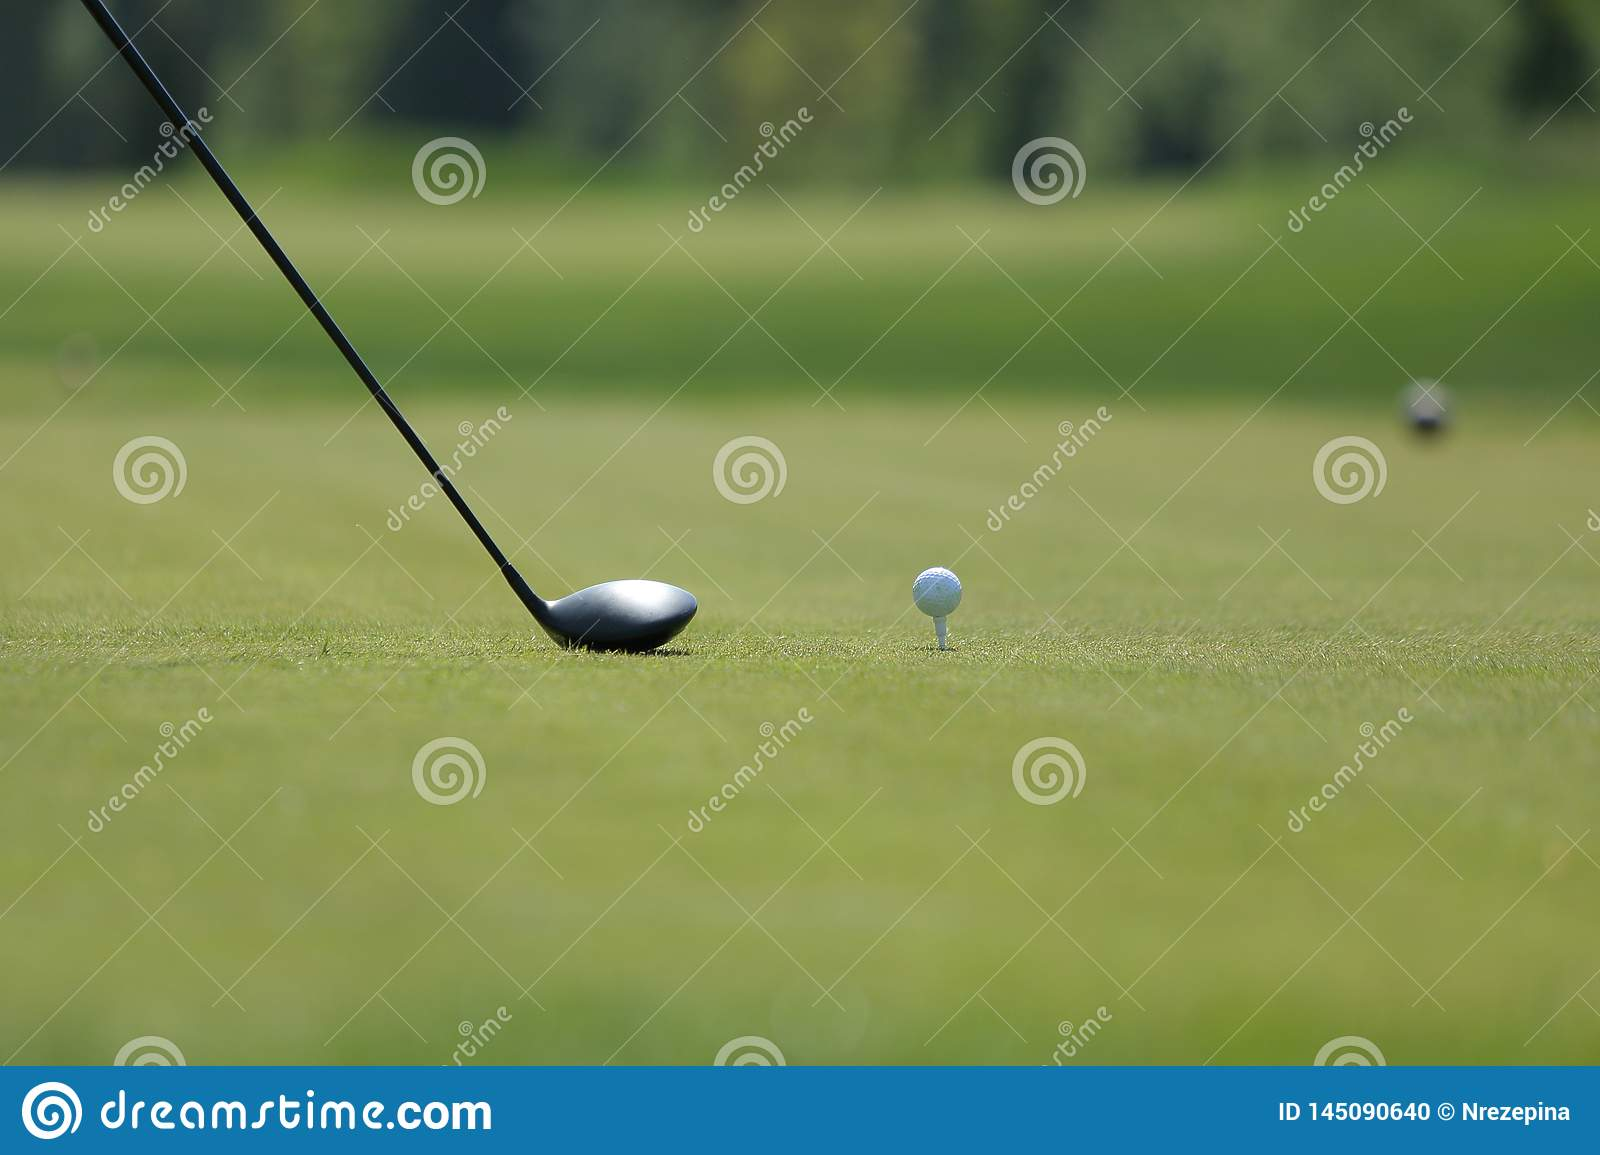 A golf driver with ball on a tee on the golf course